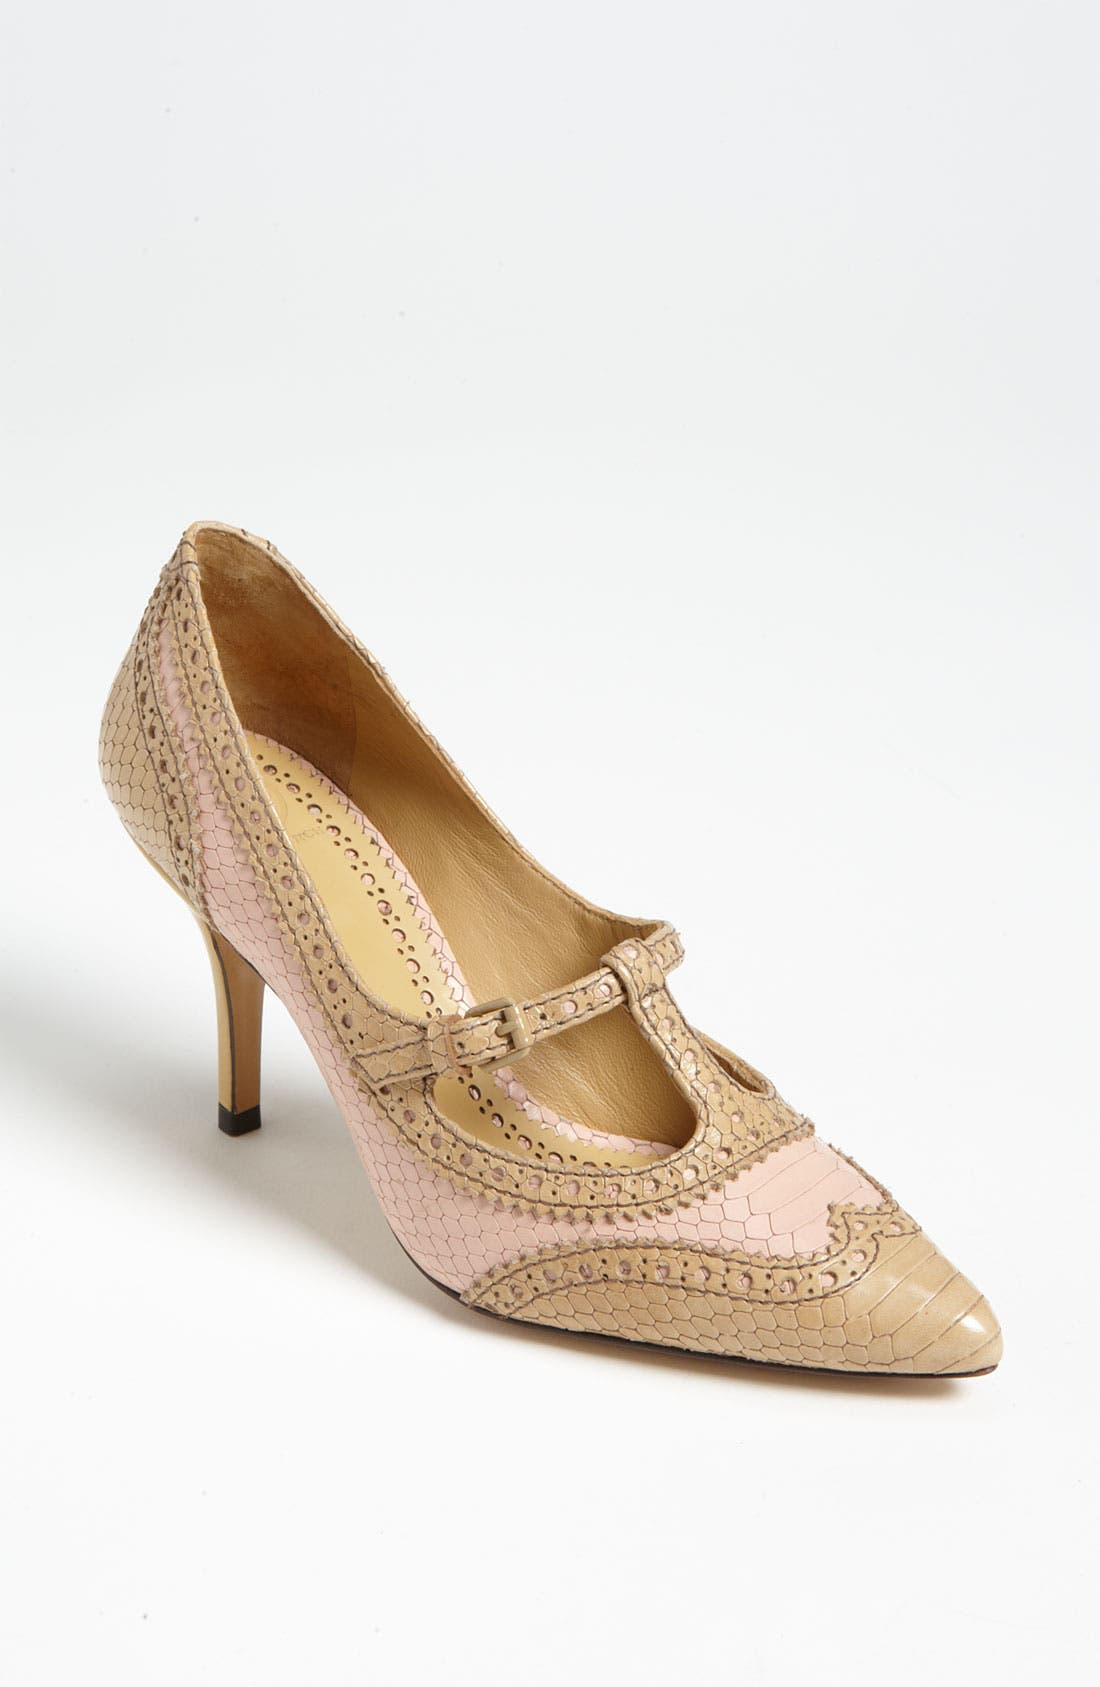 Alternate Image 1 Selected - Tory Burch 'Everly' Pump